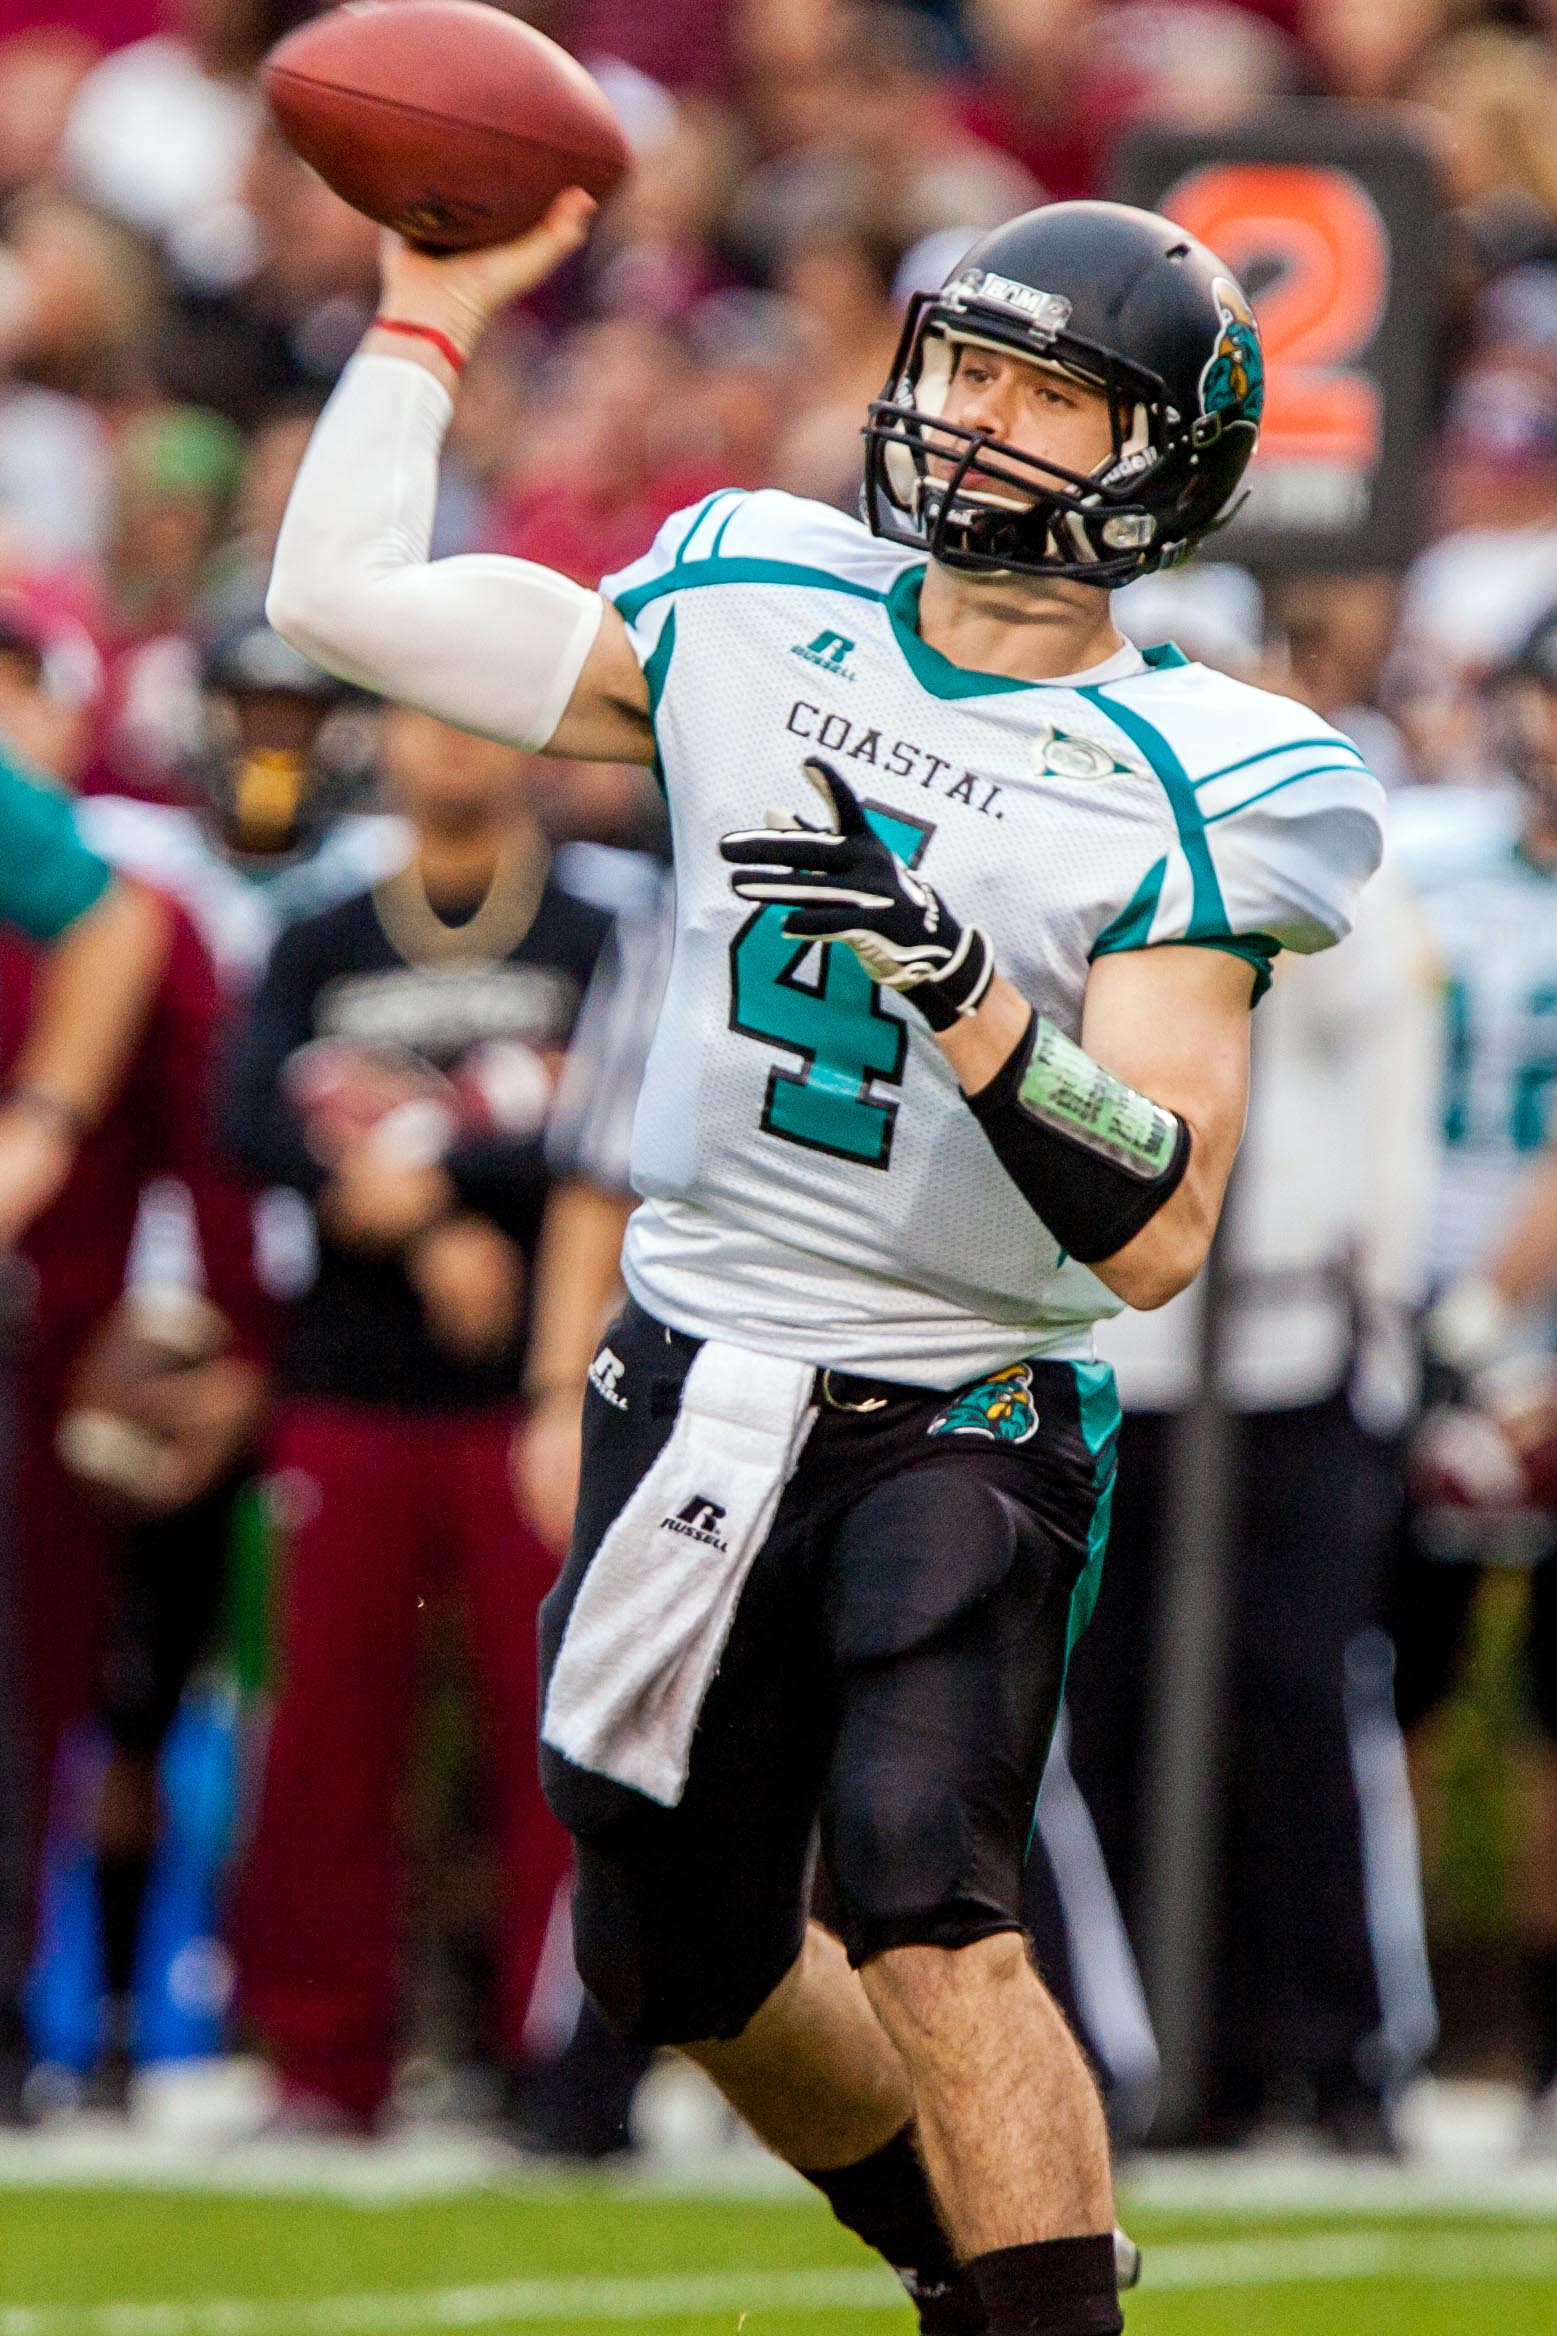 Alex Ross returns to lead the Chanticleers this year, and then they're joining the FBS.